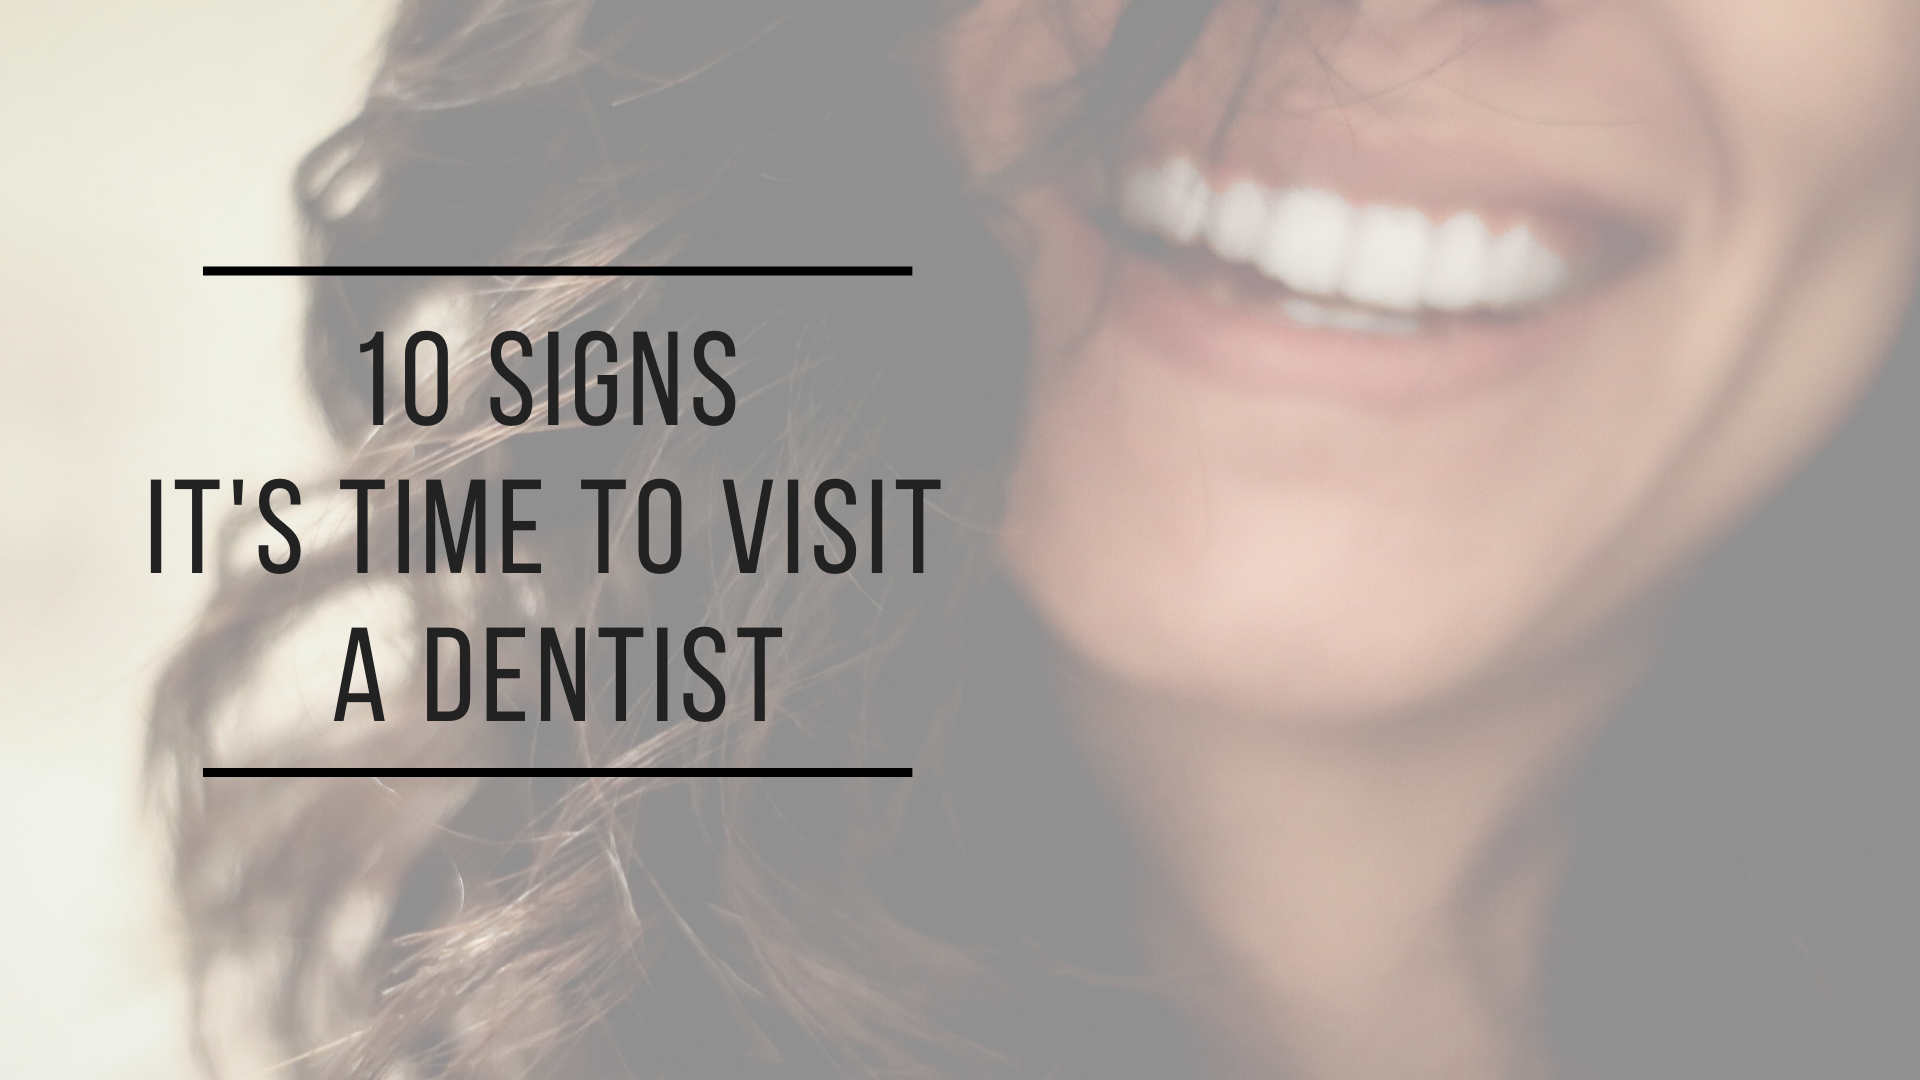 Fyffe Dentist | 10 Signs It's Time To Visit A Dentist